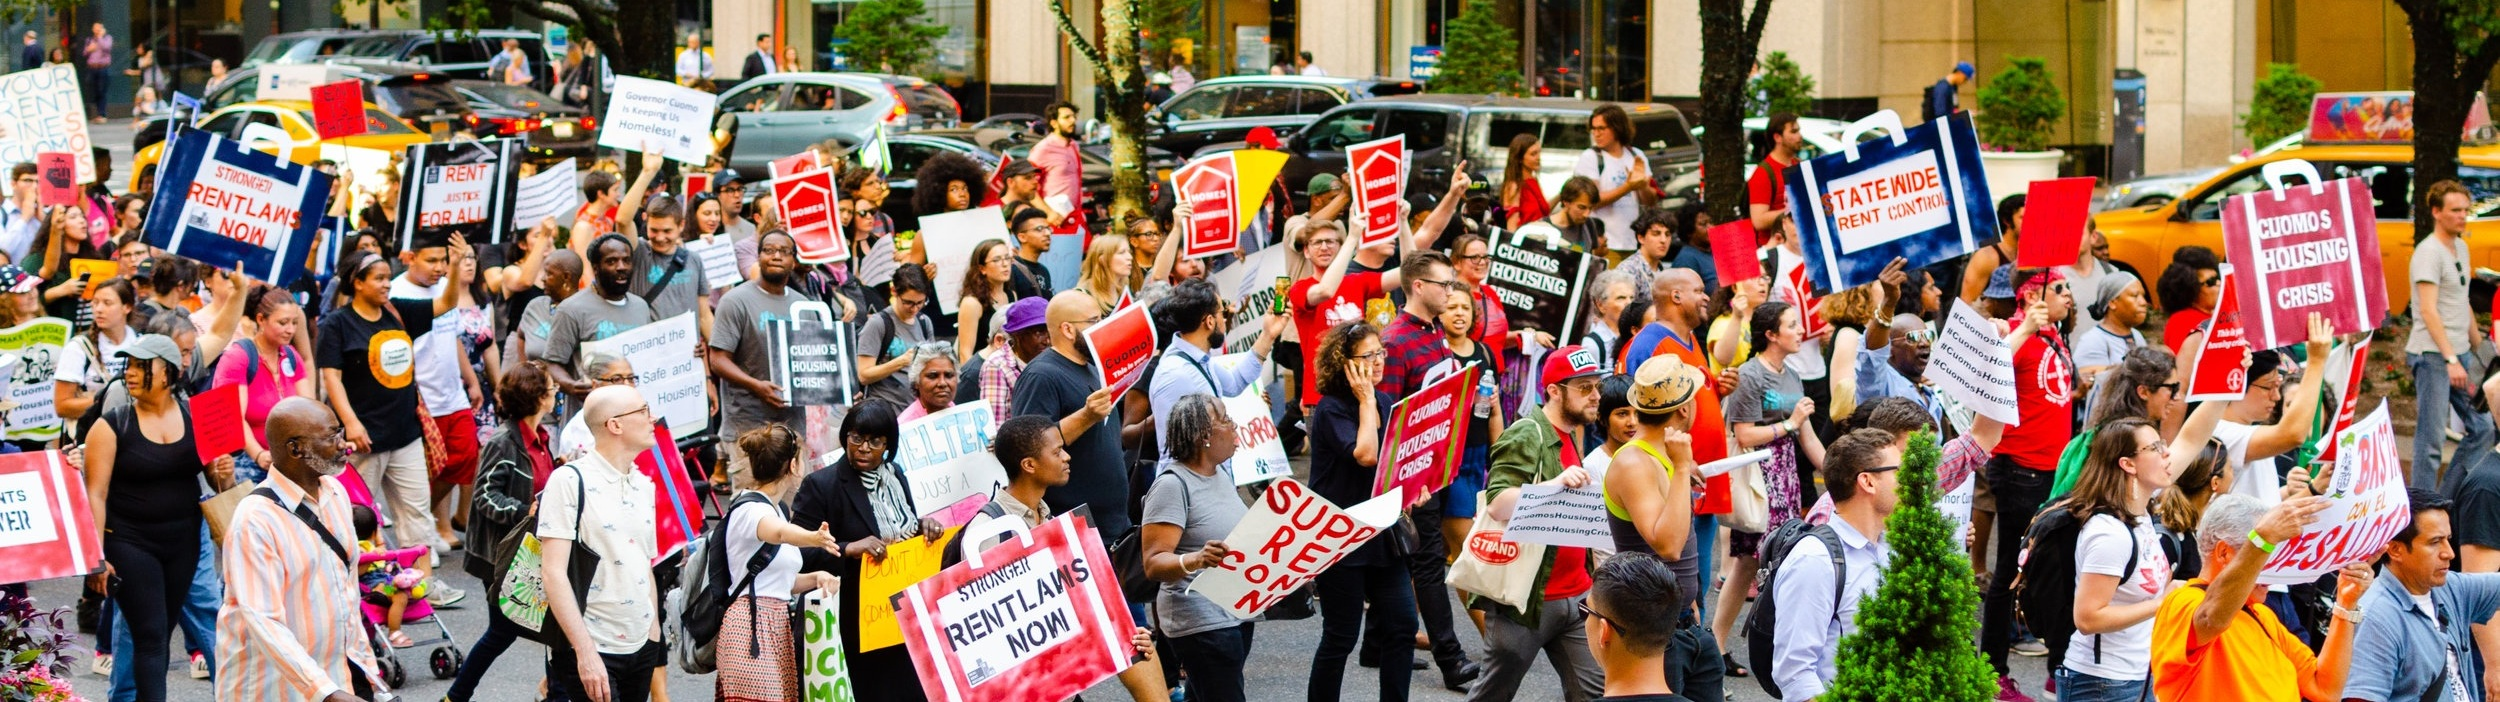 A Housing Justice for All protest in New York